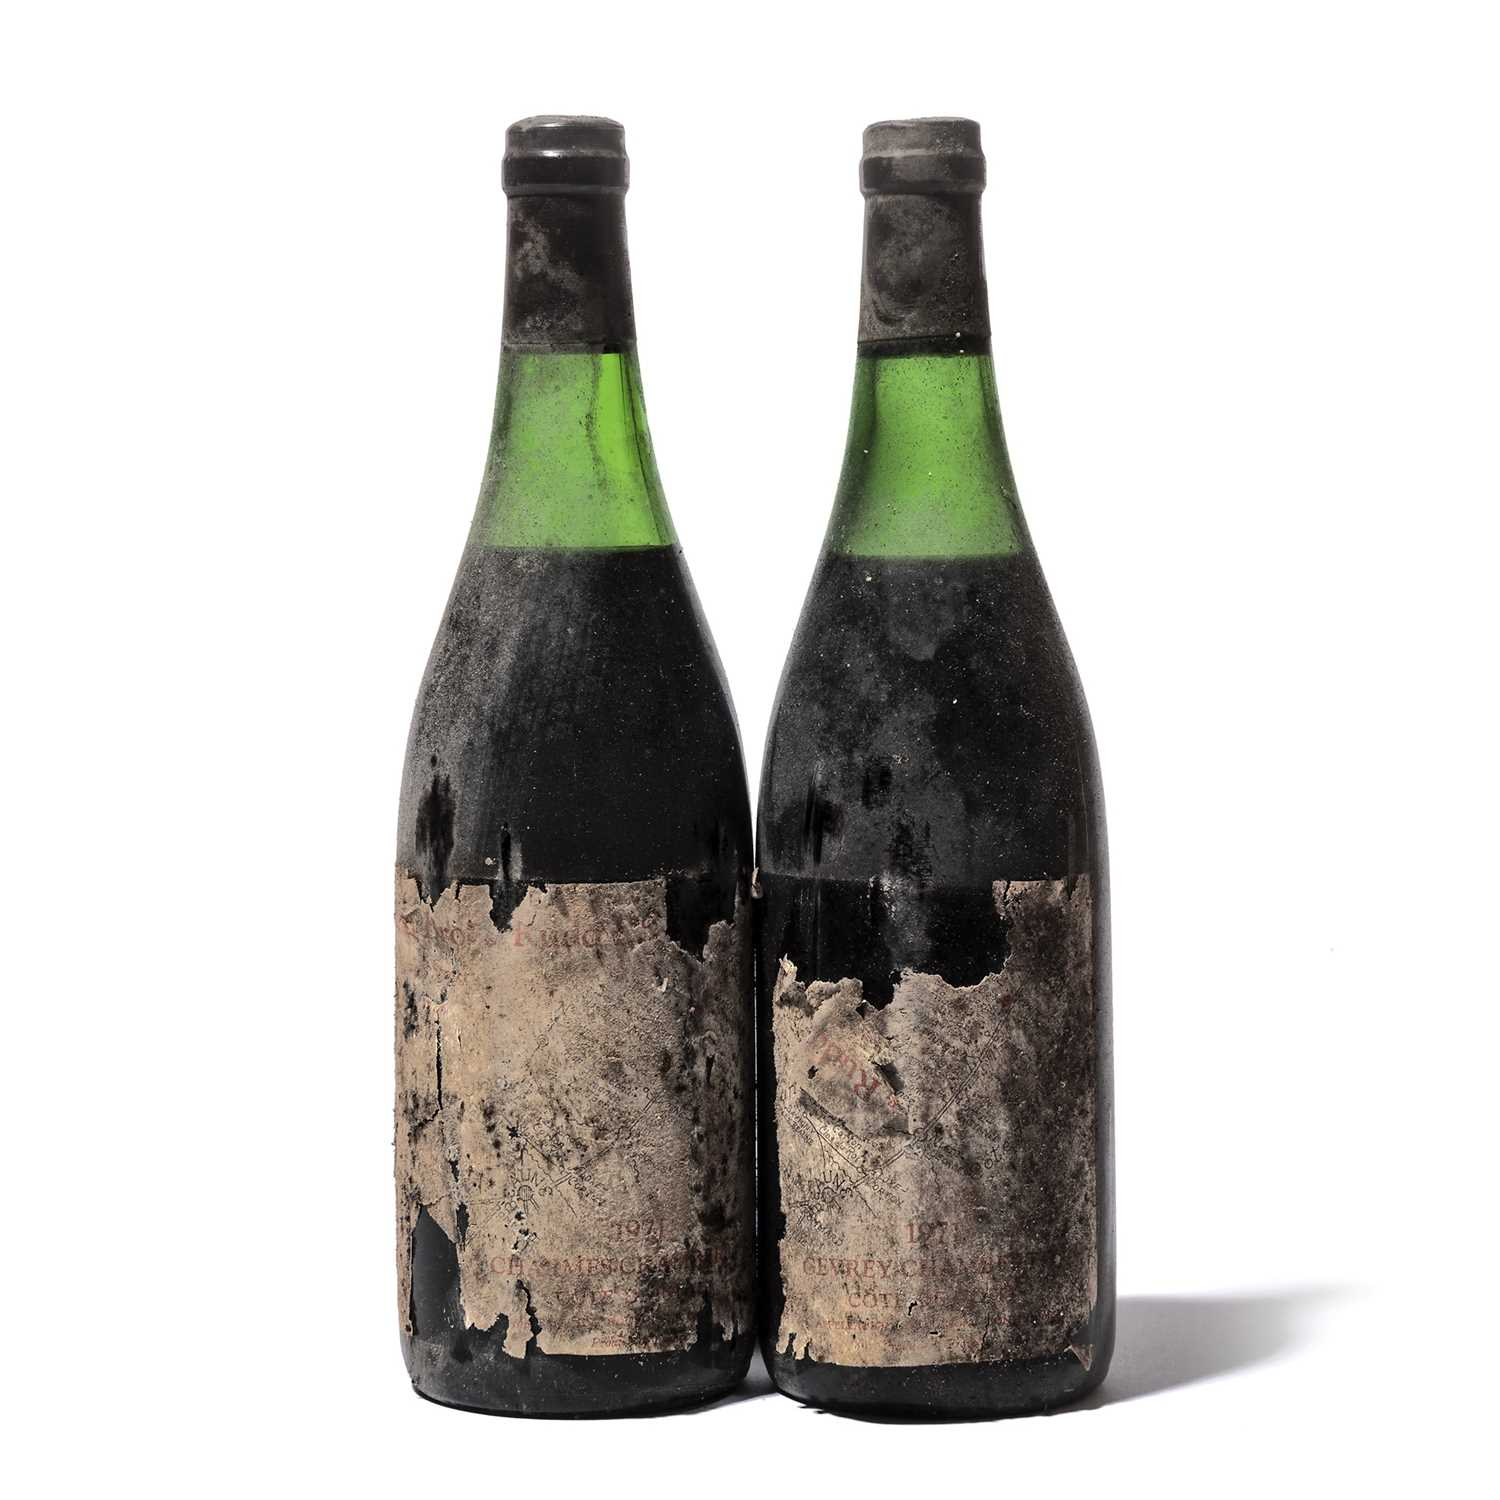 Lot 69 - 11 bottles 1971 Gevrey-Chambertin BBR